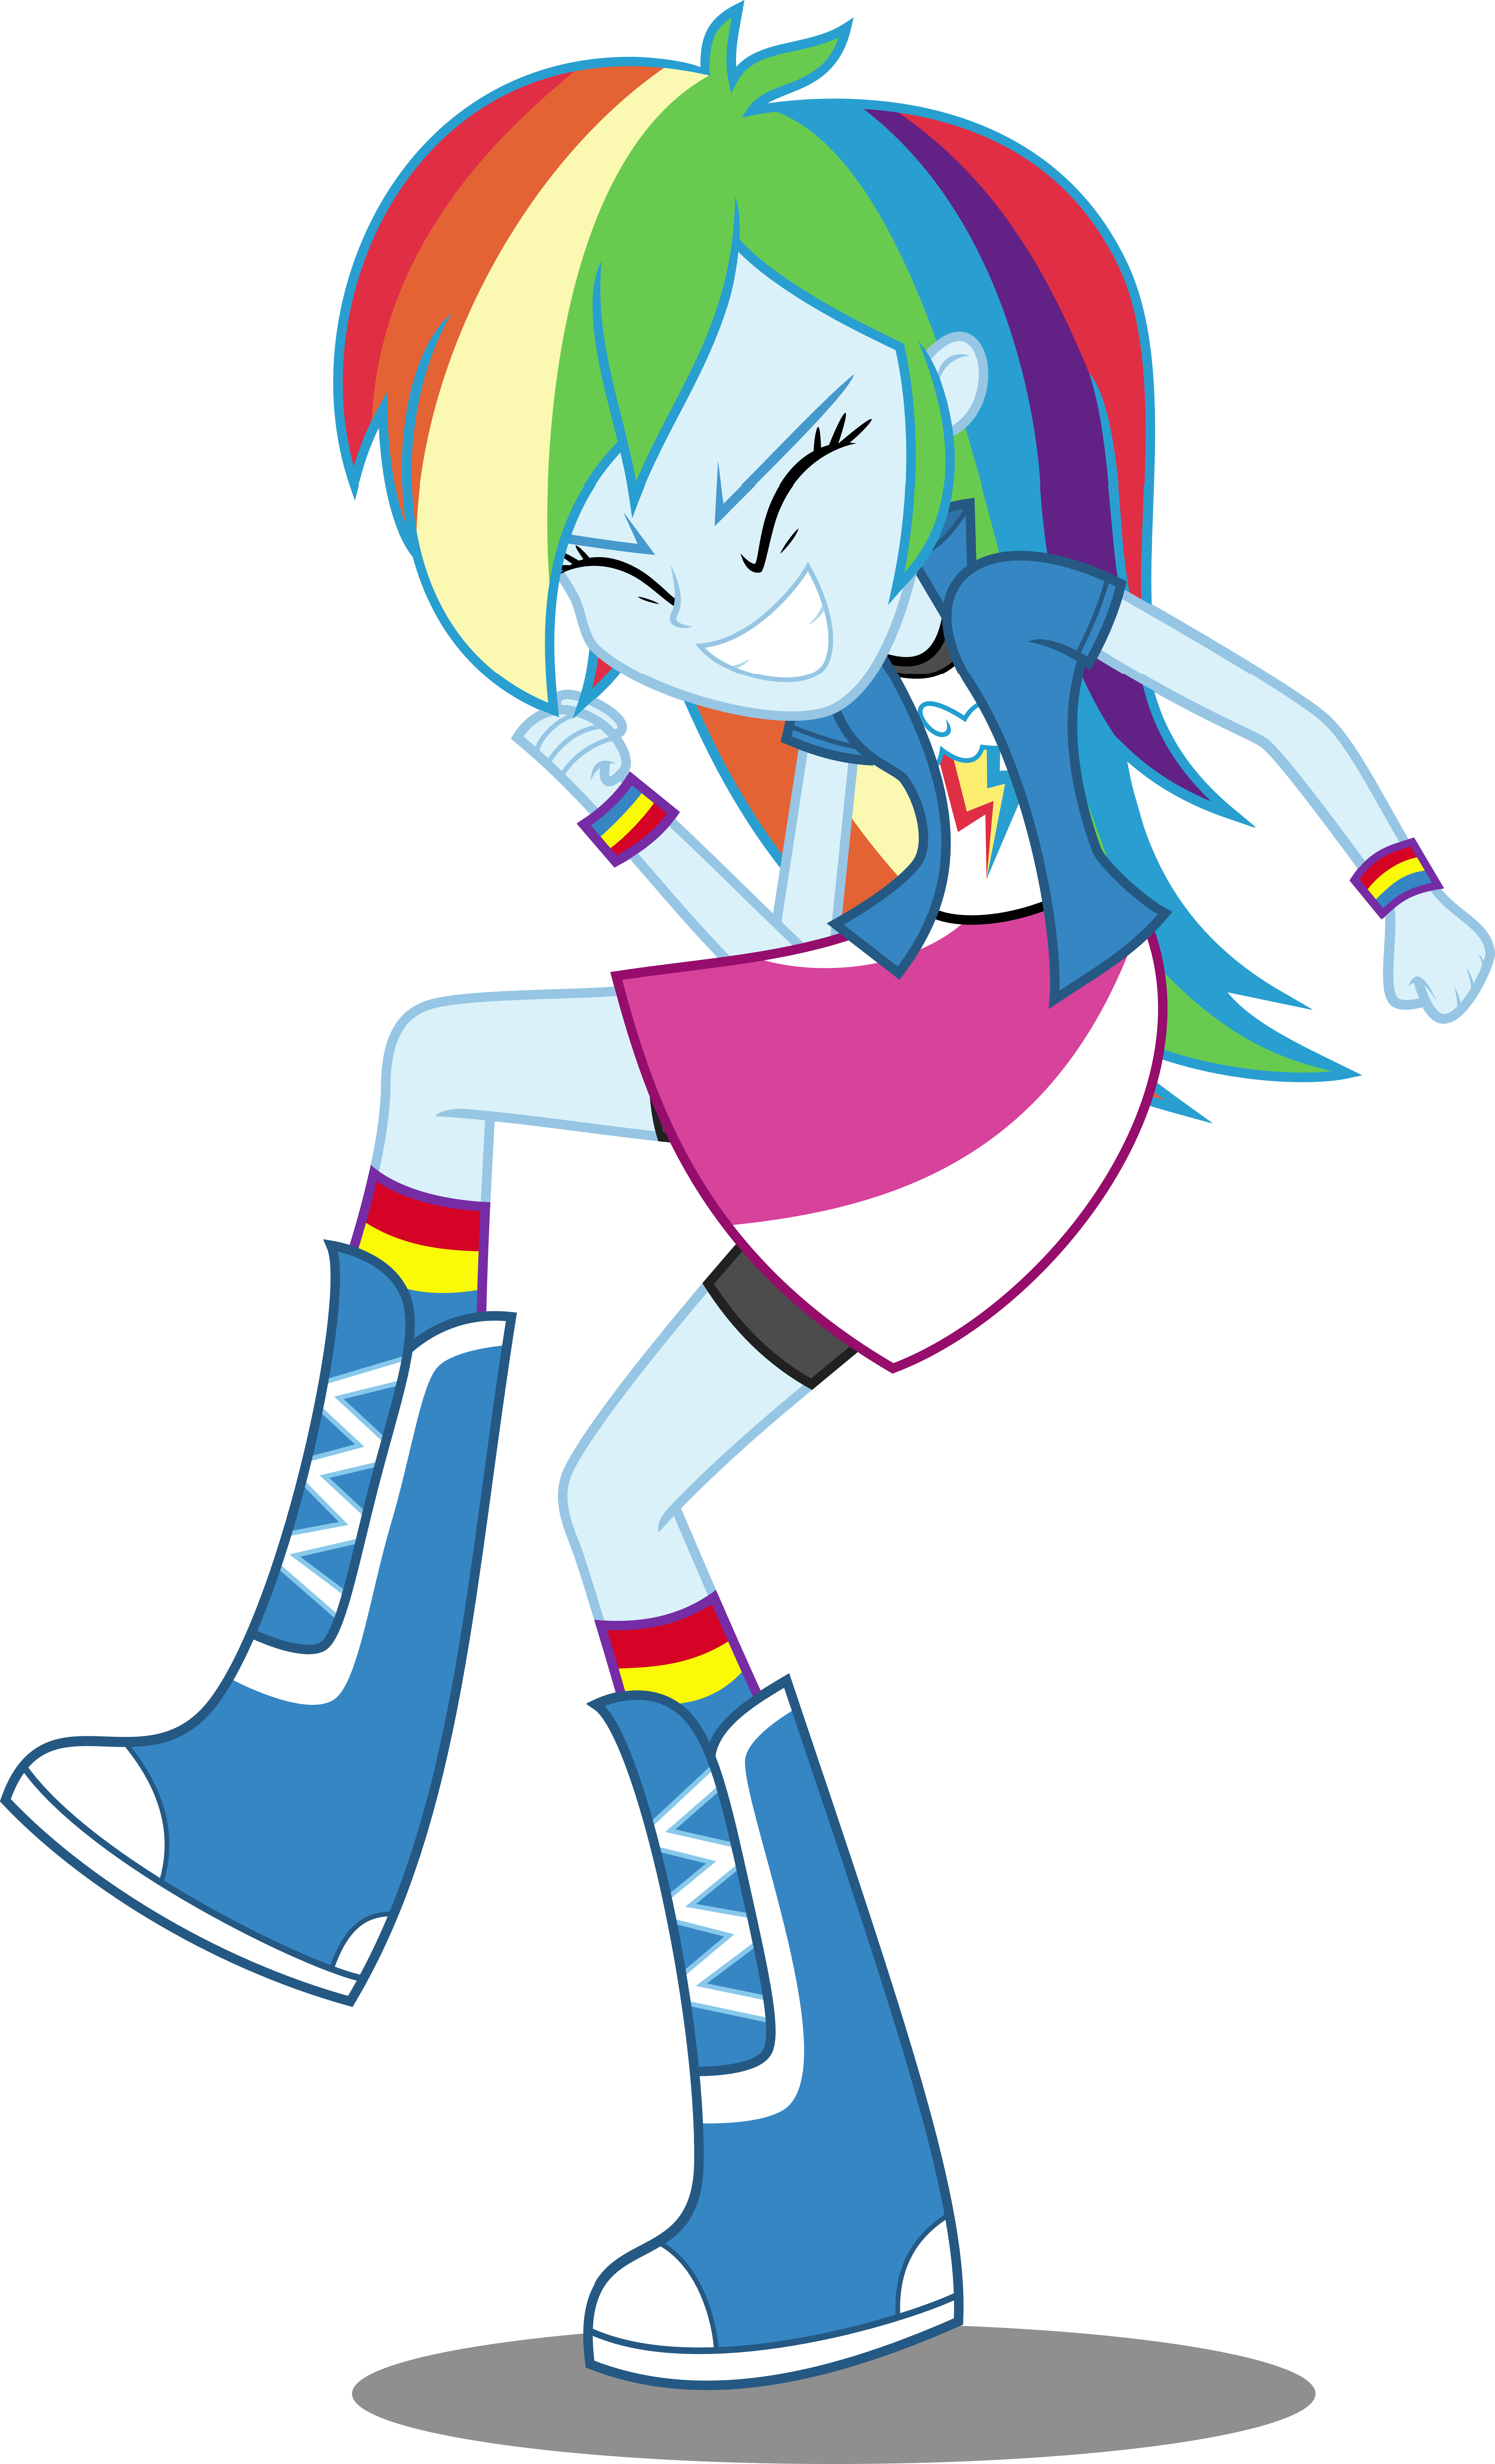 Mlp eg base clipart png library Mlp equestria girls base rainbow dash clipart images gallery ... png library